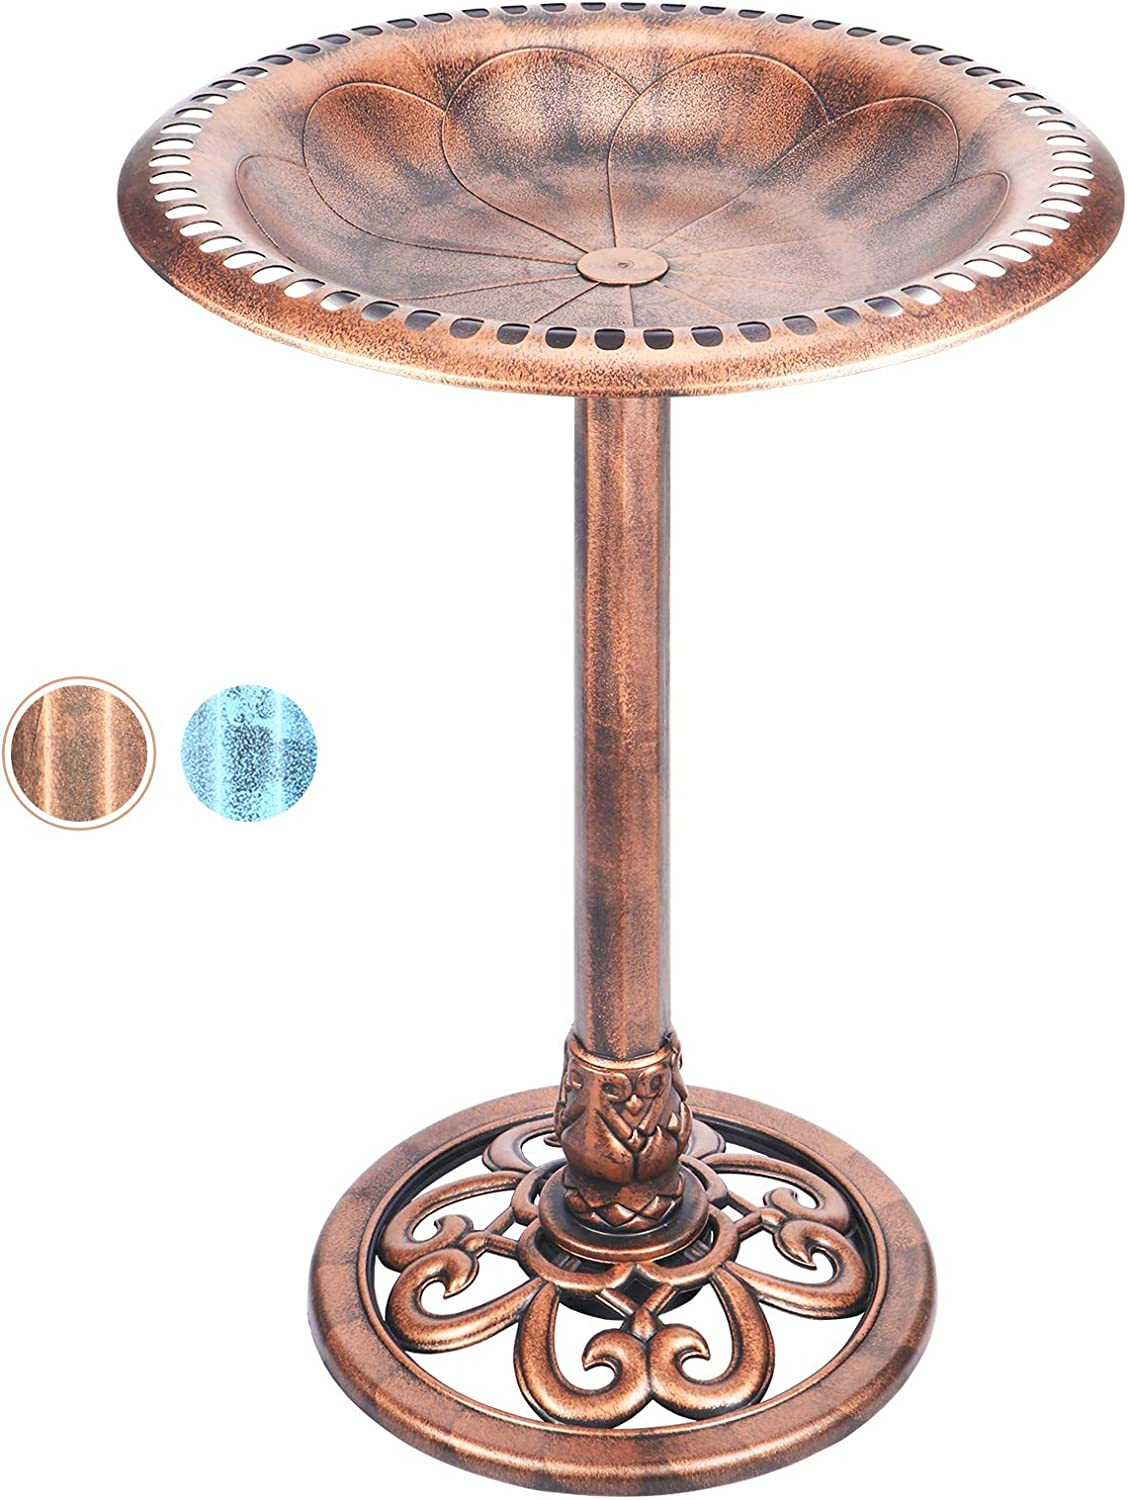 DREAM GARDEN 28 Inch Height Polyresin Birdbaths Lightweight Antique Outdoor Garden Pedestal Bird Bath Copper